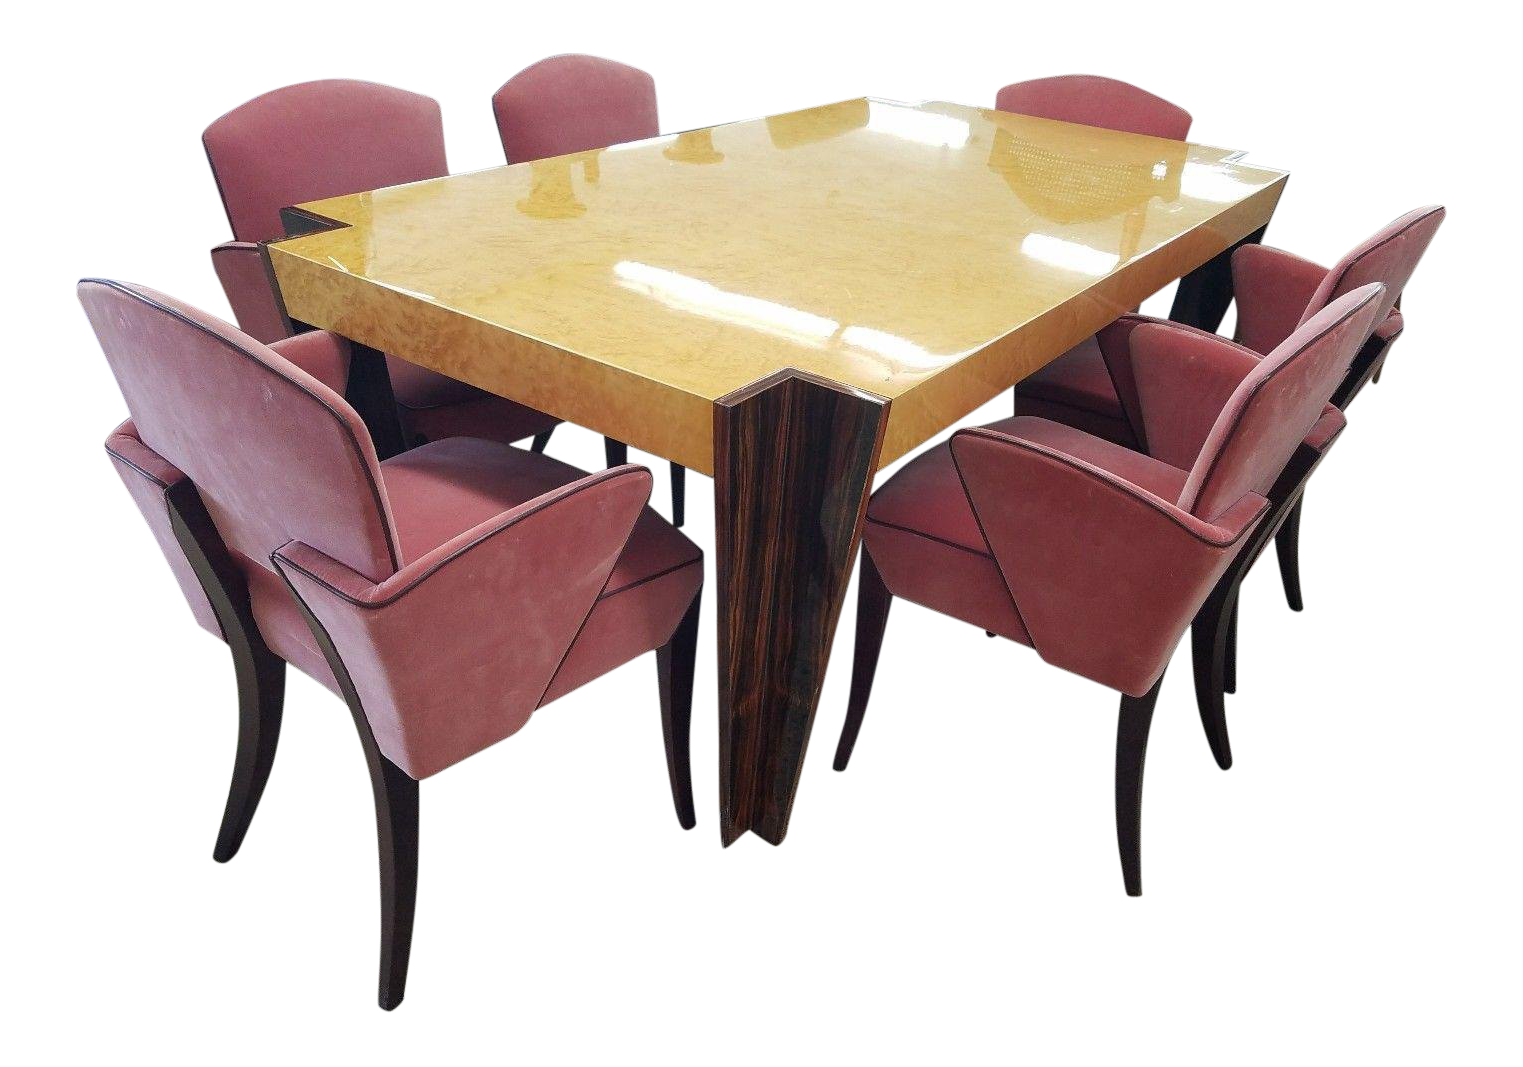 Italian Art Deco Revival Rosewood   Birdseye Maple Dining Set